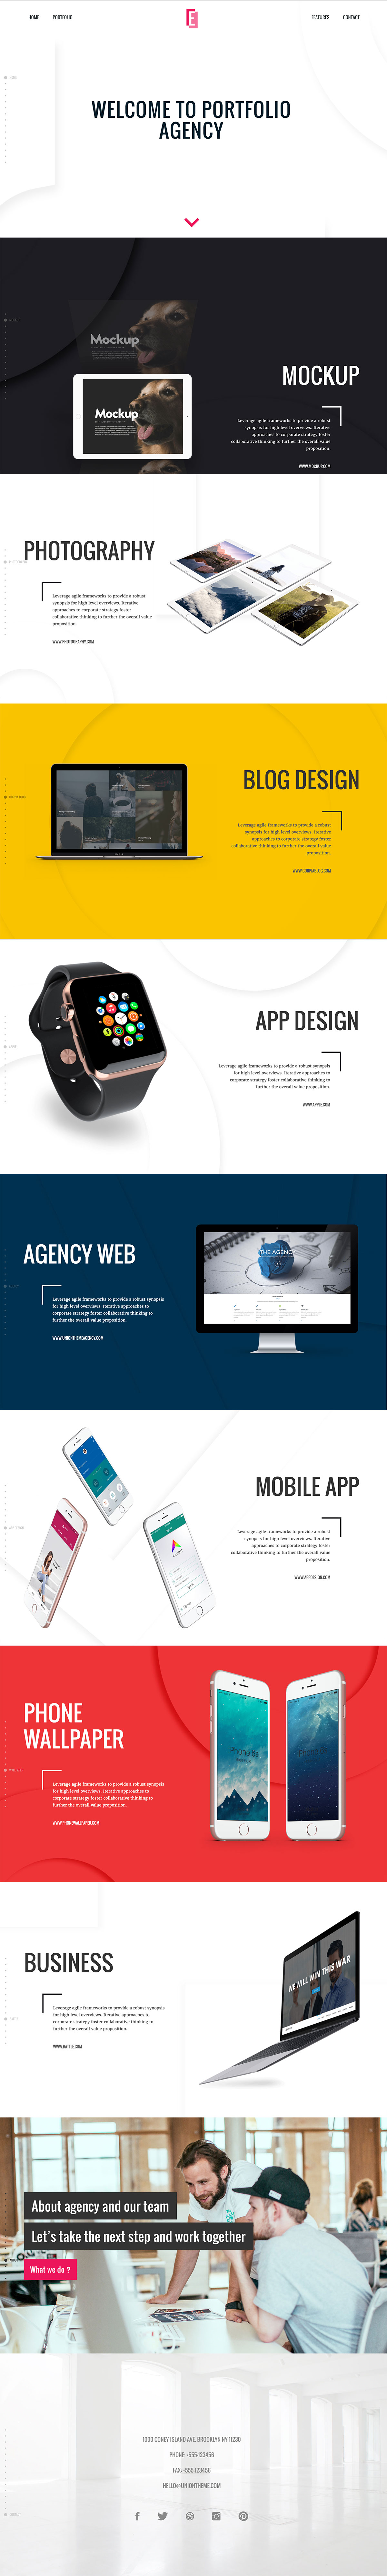 Epoch - FullScreen Agency WordPress Theme